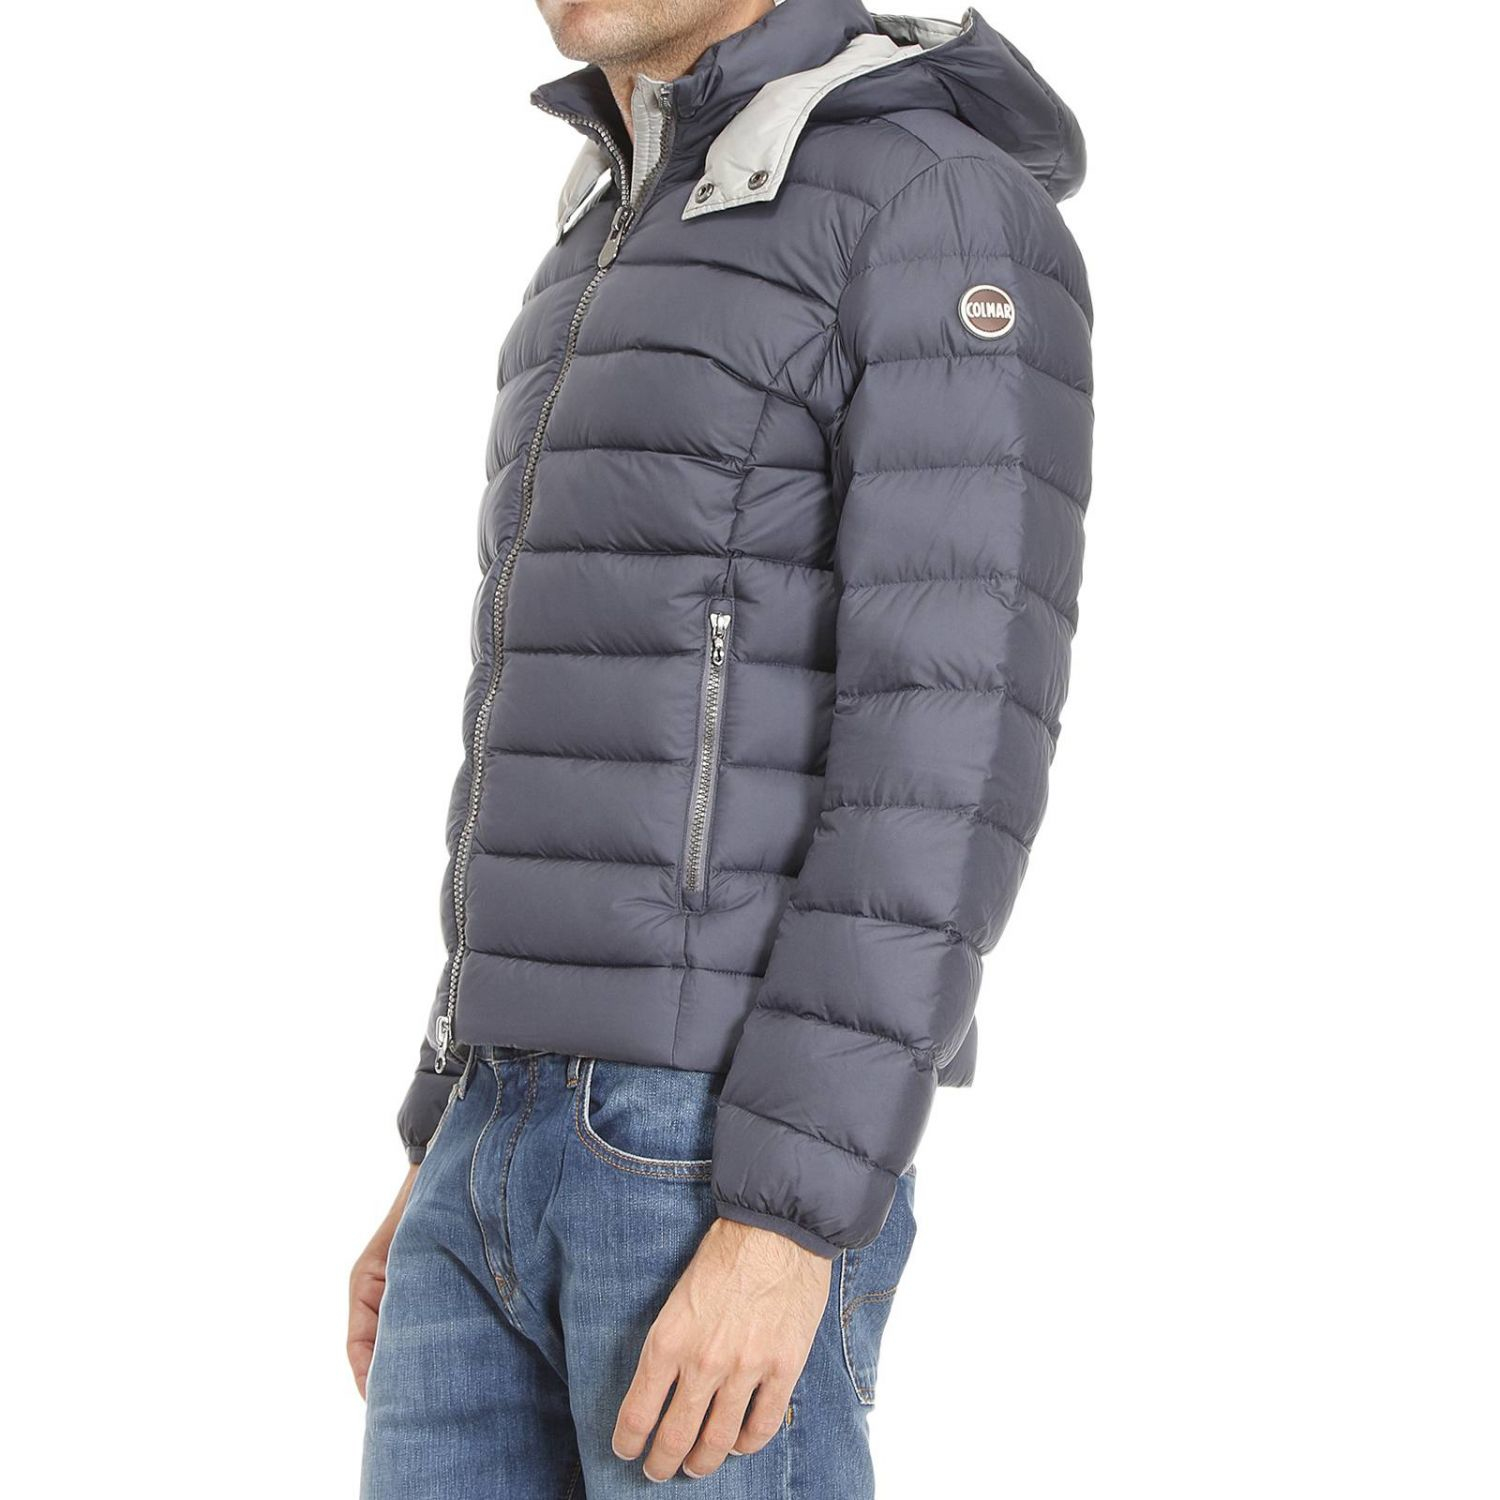 single men in colmar Colmar 38lh ski pants mens ski out onto the slopes in comfort and style in these colmar 38lh ski pants, designed with a zip fly and single clasp fastening with touch and close waist.